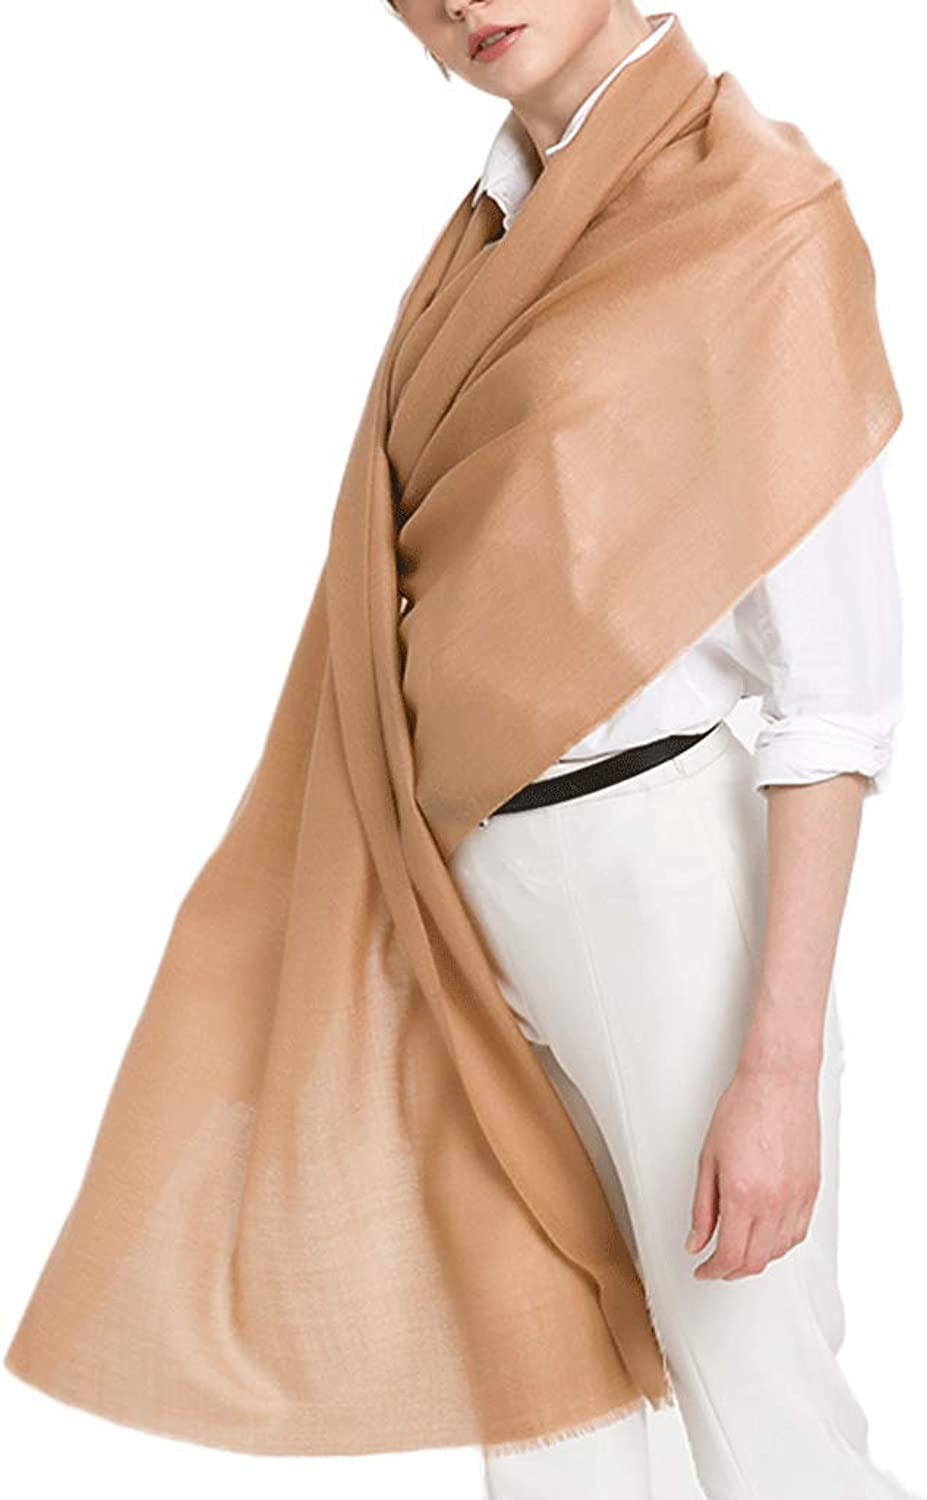 CHX Woman Scarf Thin Section Keep Warm Shawl Multipurpose 230cm×80cm V (color   Camel)